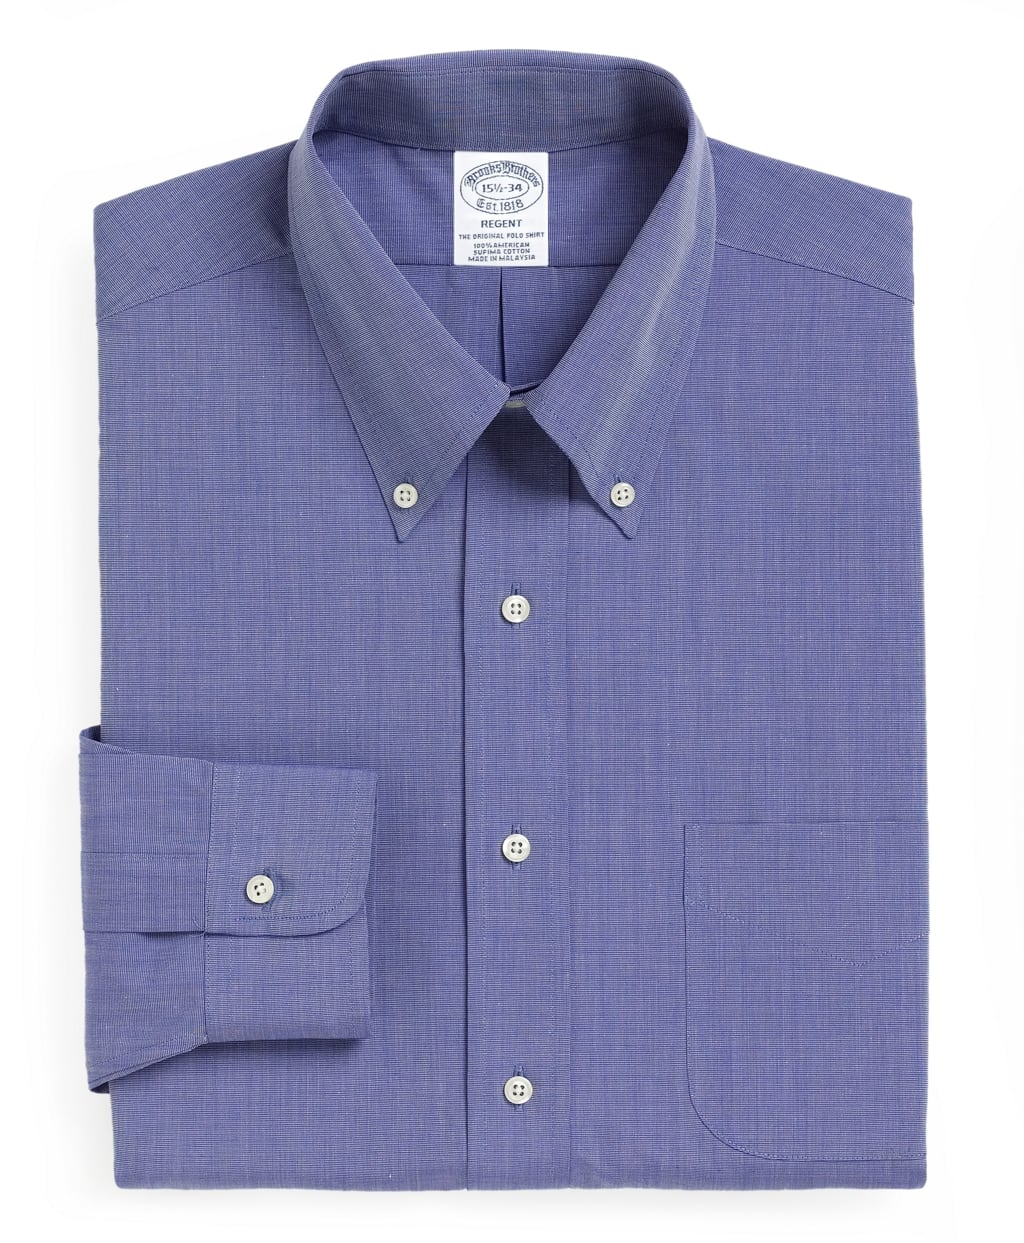 fa8be9381b3 Brooks Brothers Men s Dress and Sport Shirts (Select Styles ...